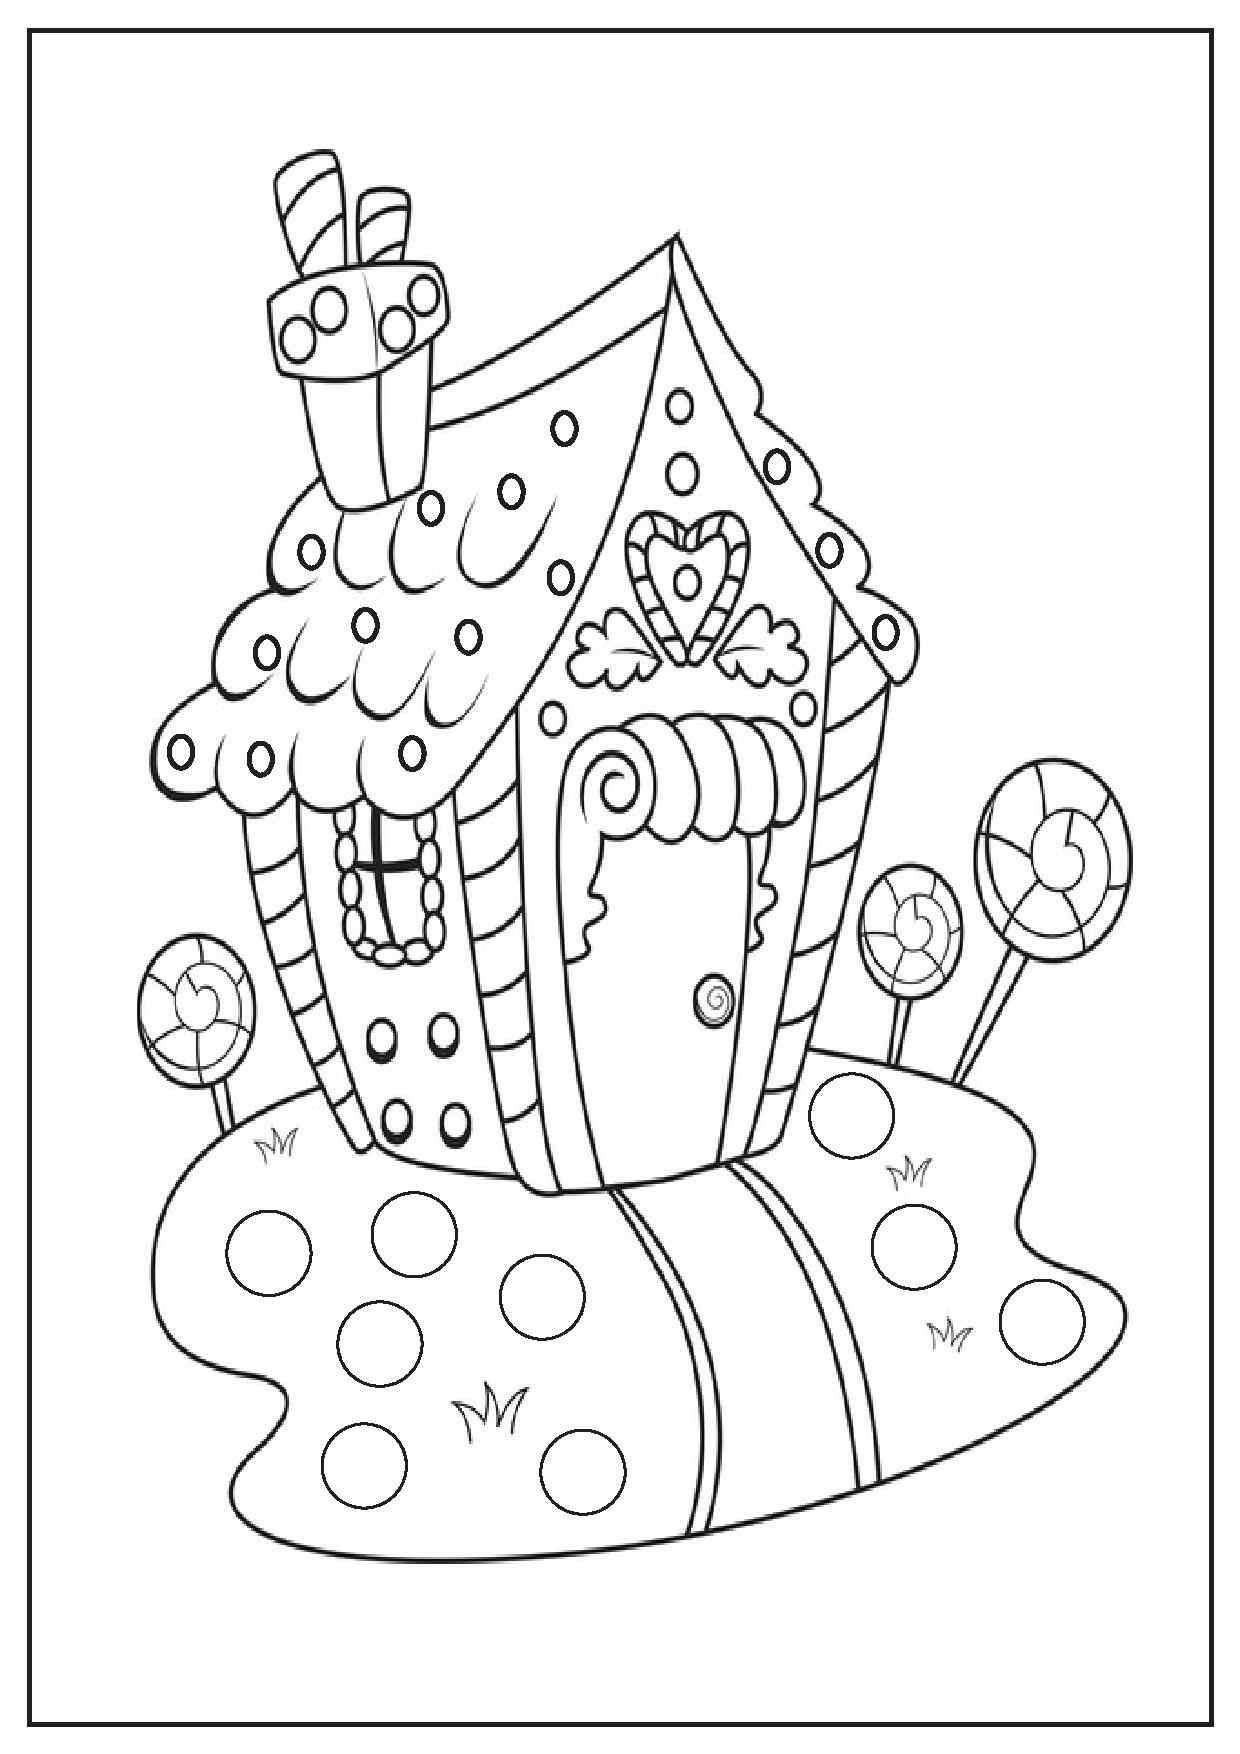 Kindergarten coloring sheets only coloring pages Coloring book for kindergarten pdf